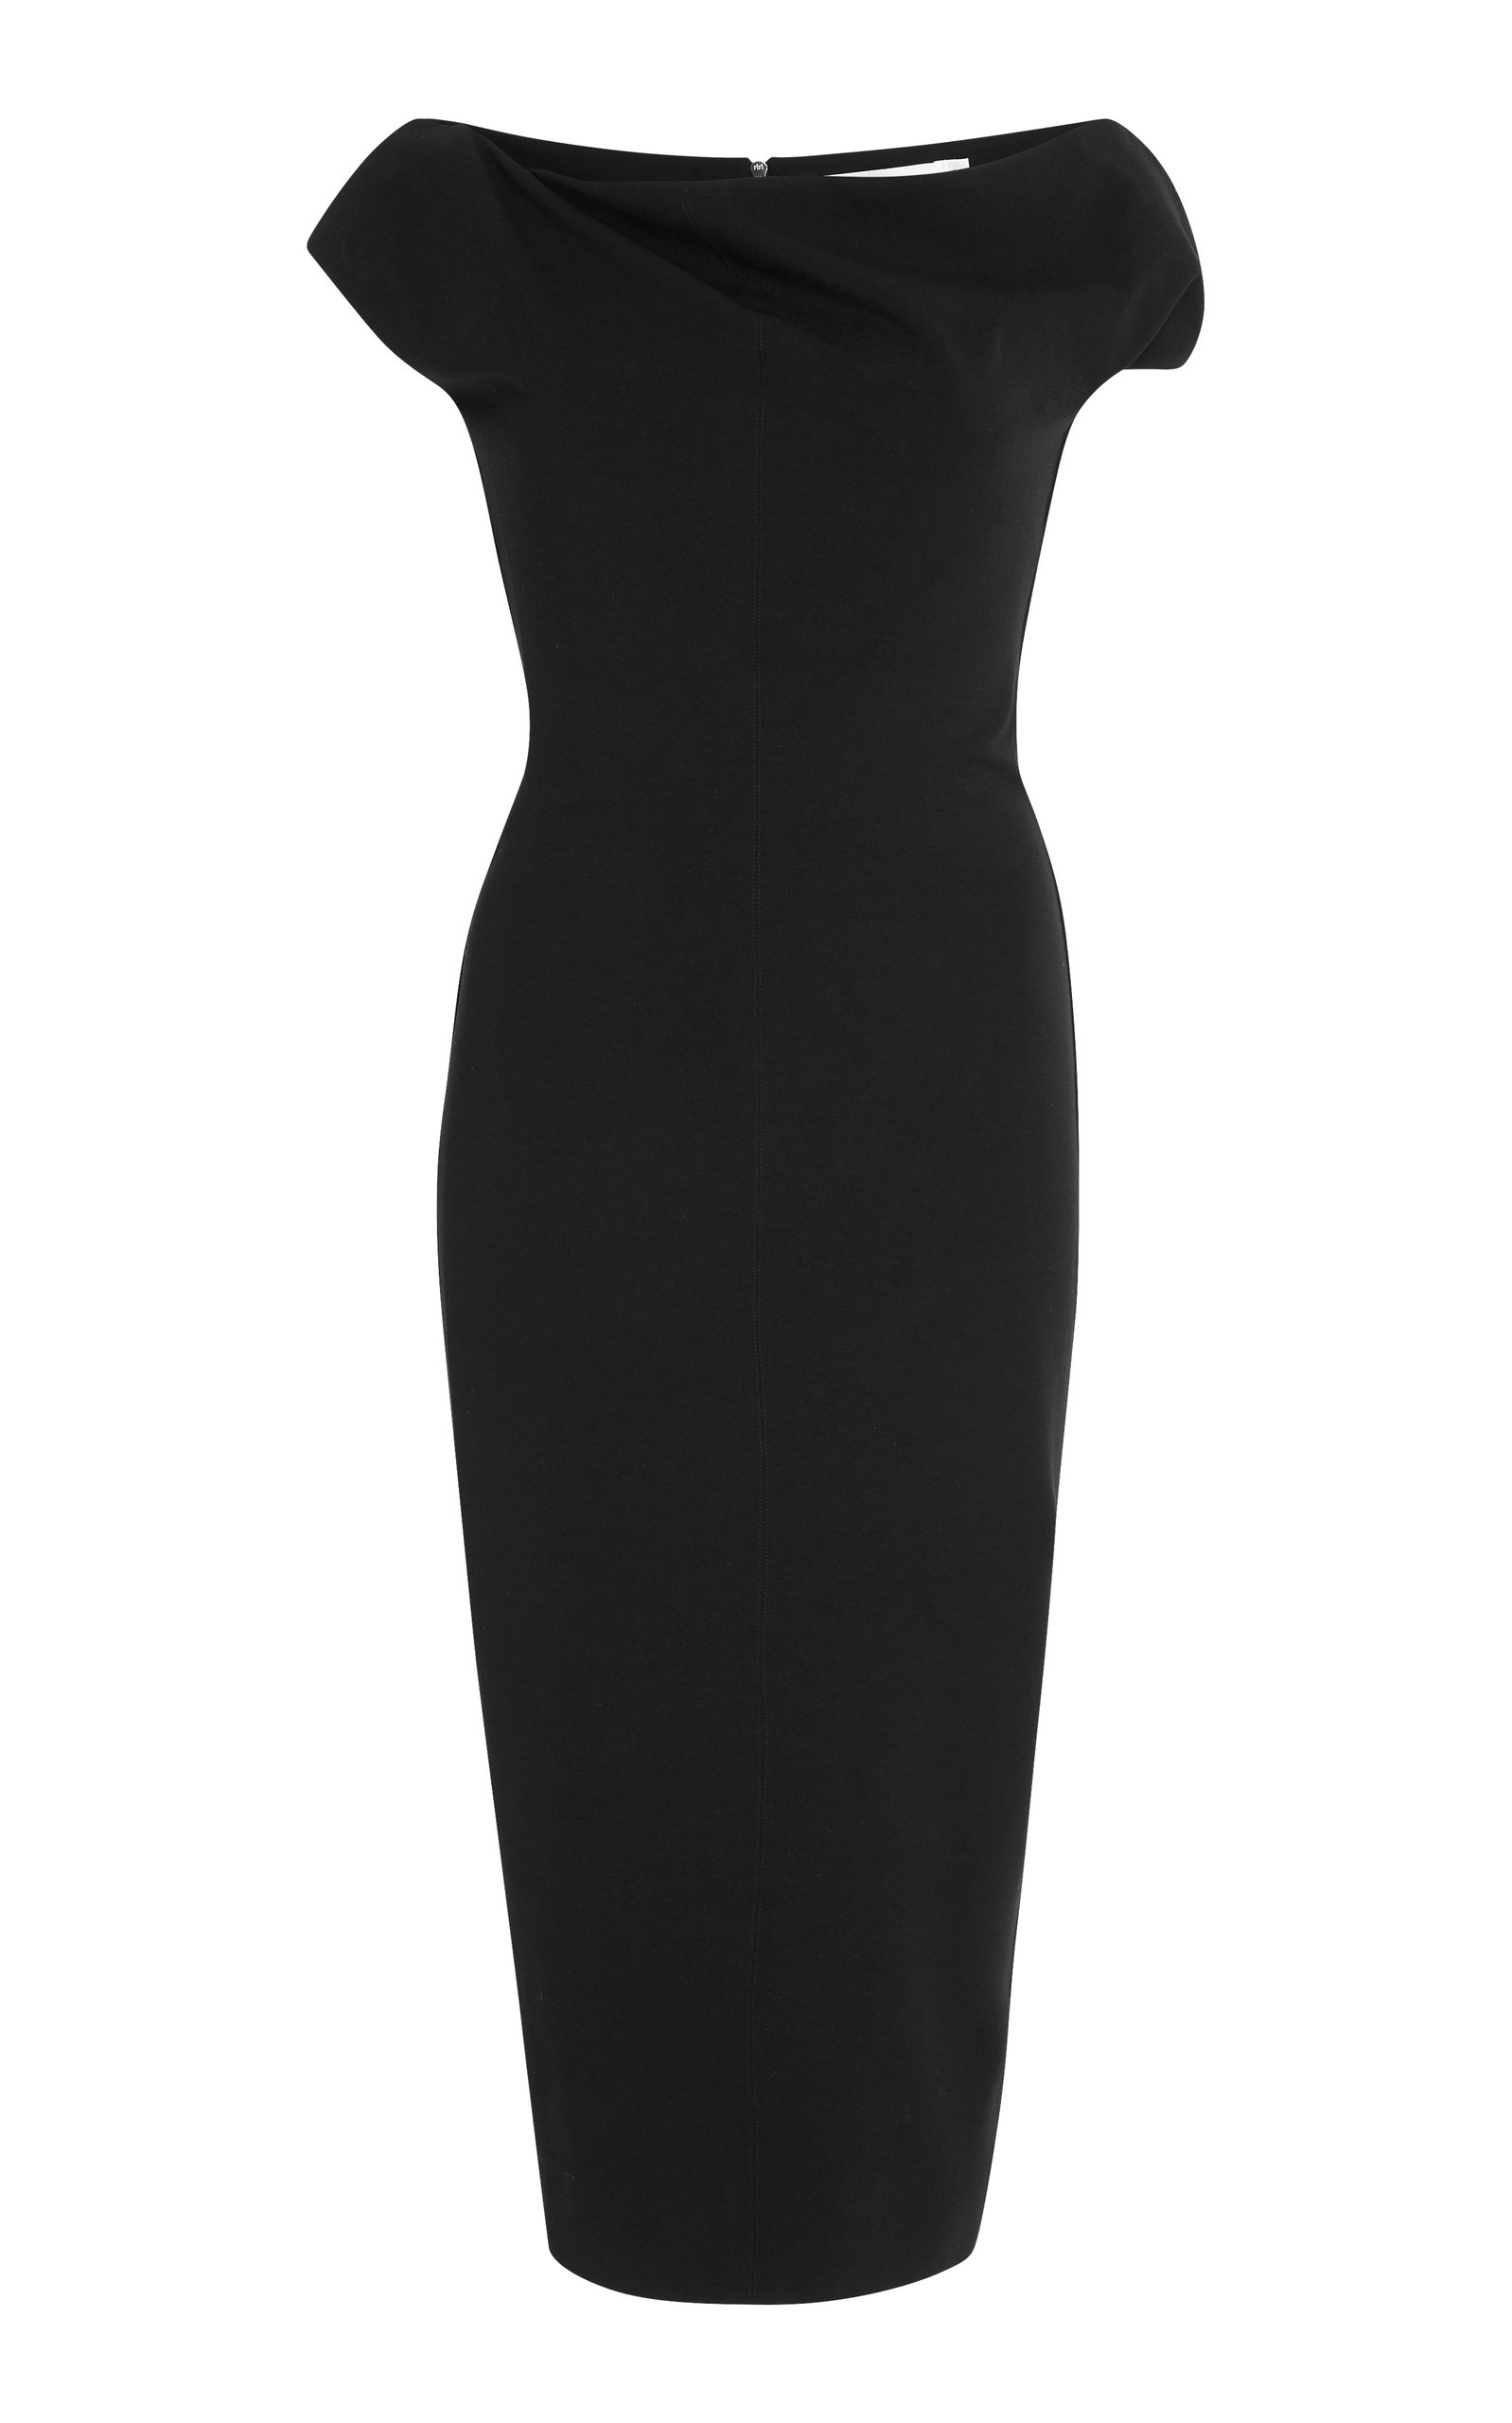 Buy Cheap Genuine Clearance Low Cost Draped Jersey Dress Victoria Beckham Largest Supplier Online jxESa8E